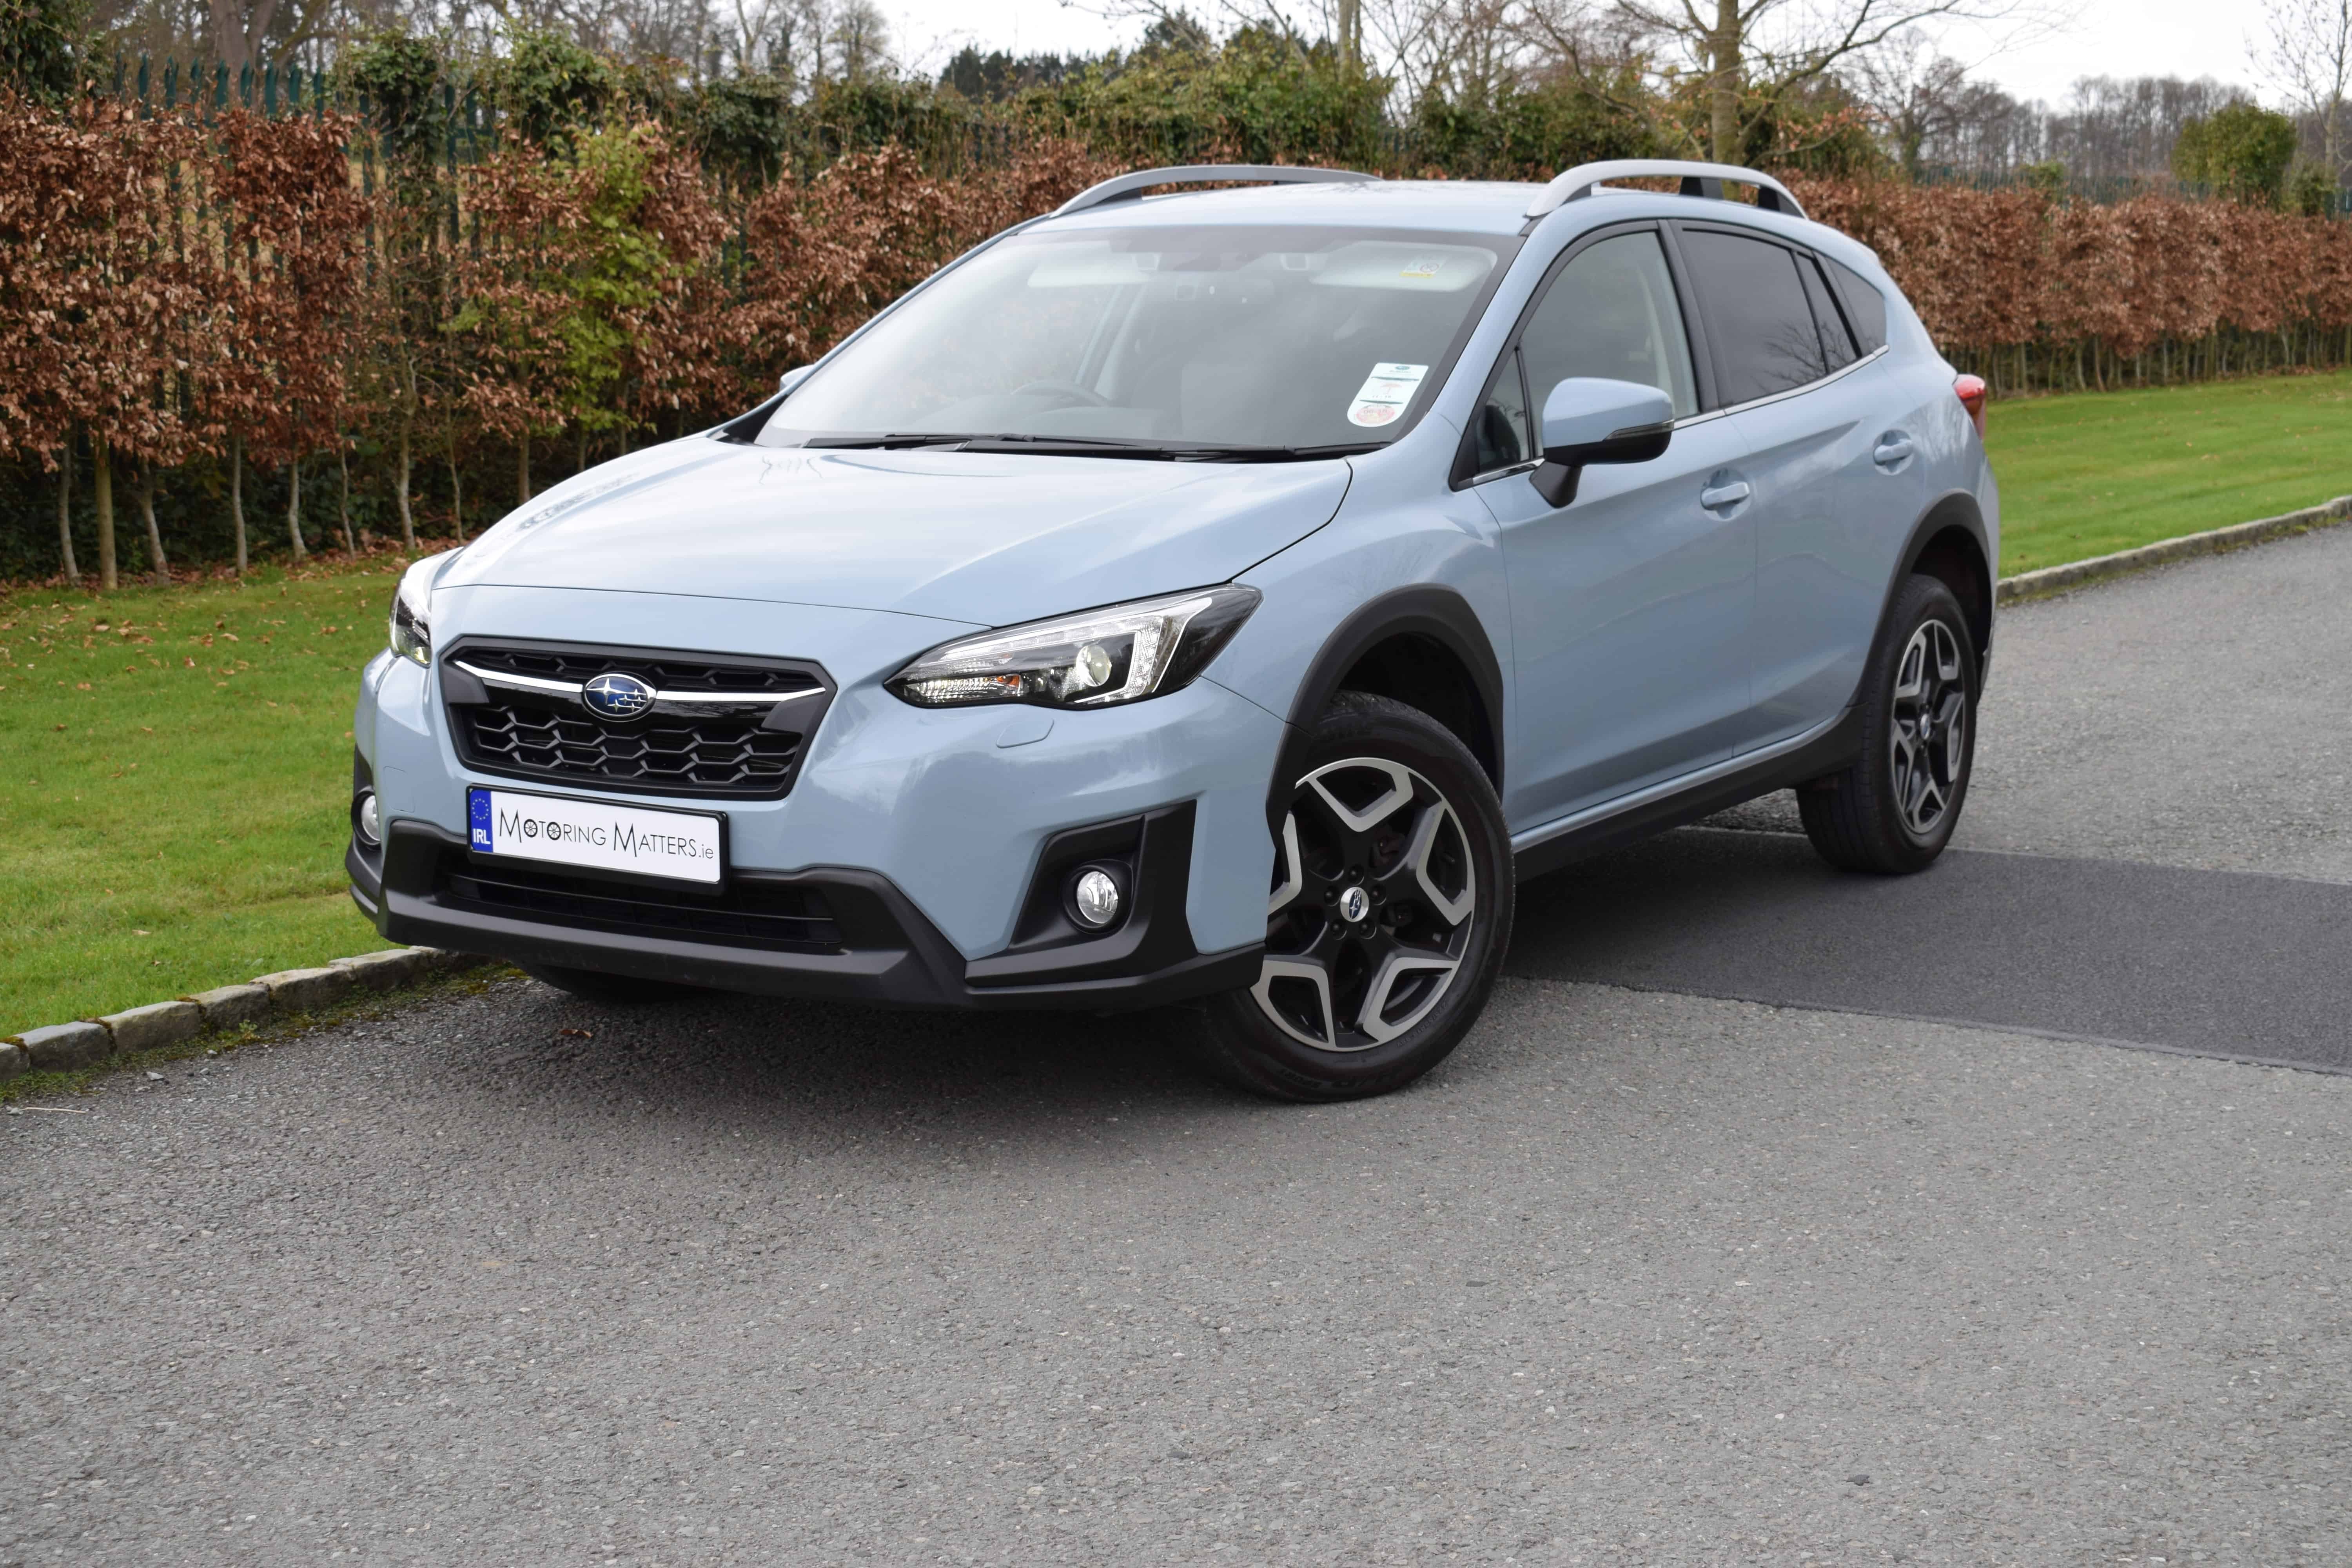 New Subaru Xv >> All New Subaru Xv Crossover Suv Motoring Matters